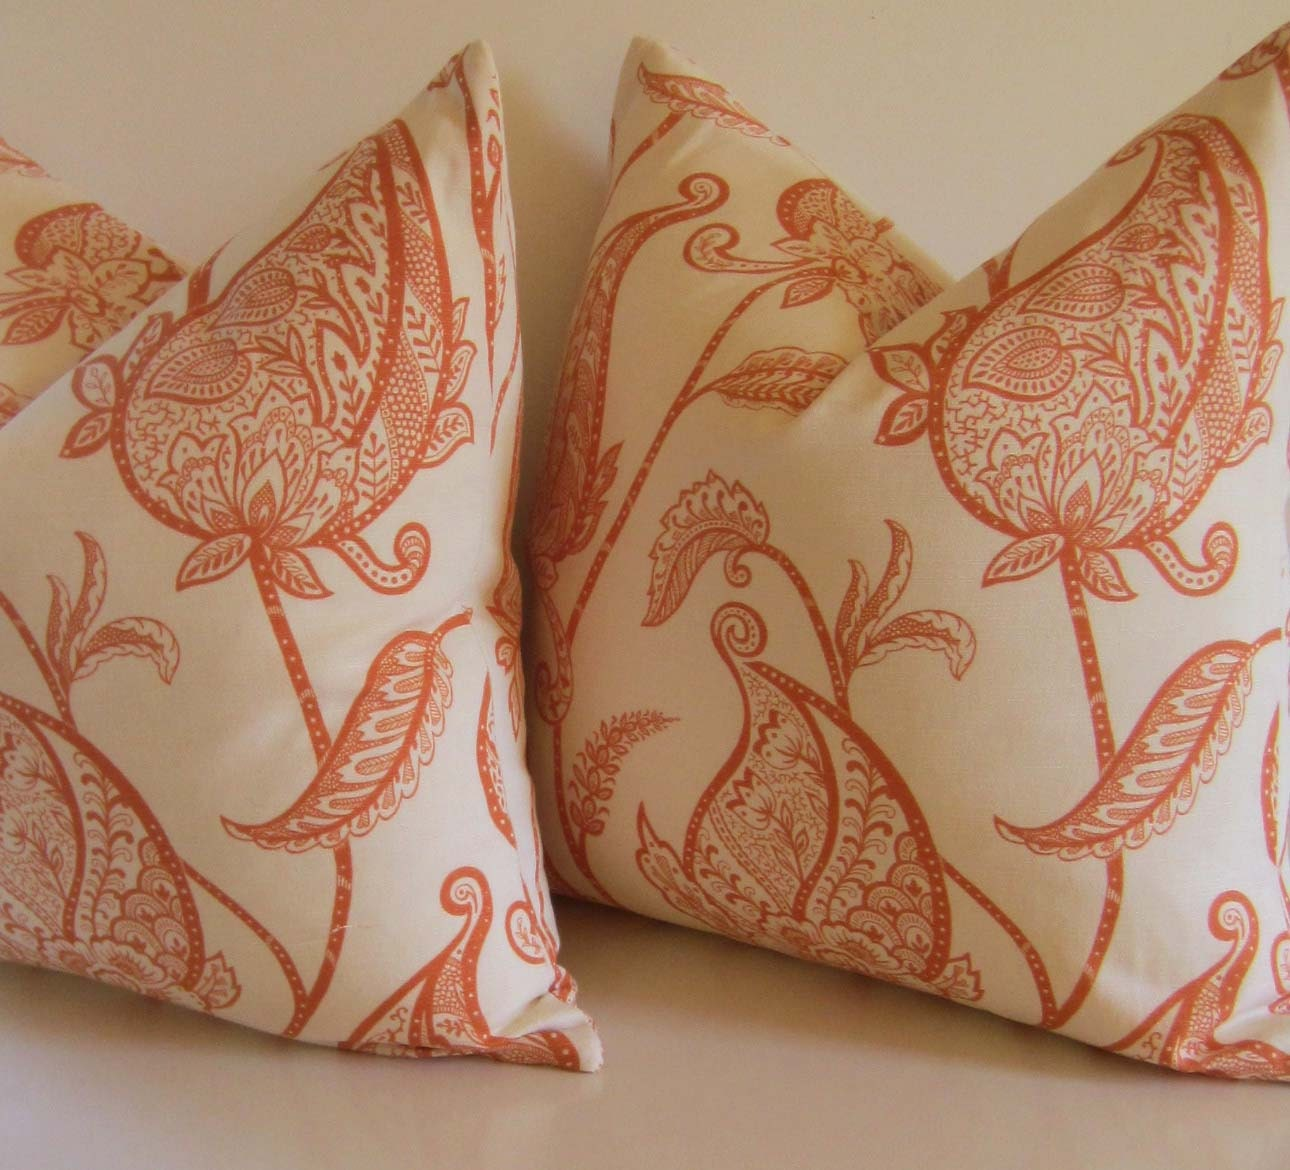 Set of Two - Decorative Pillows - 20 inch - Duralee Lucinda 3 Melon - Persimmon - Orange - Cream - Paisley - Floral - ready to ship - studiotullia